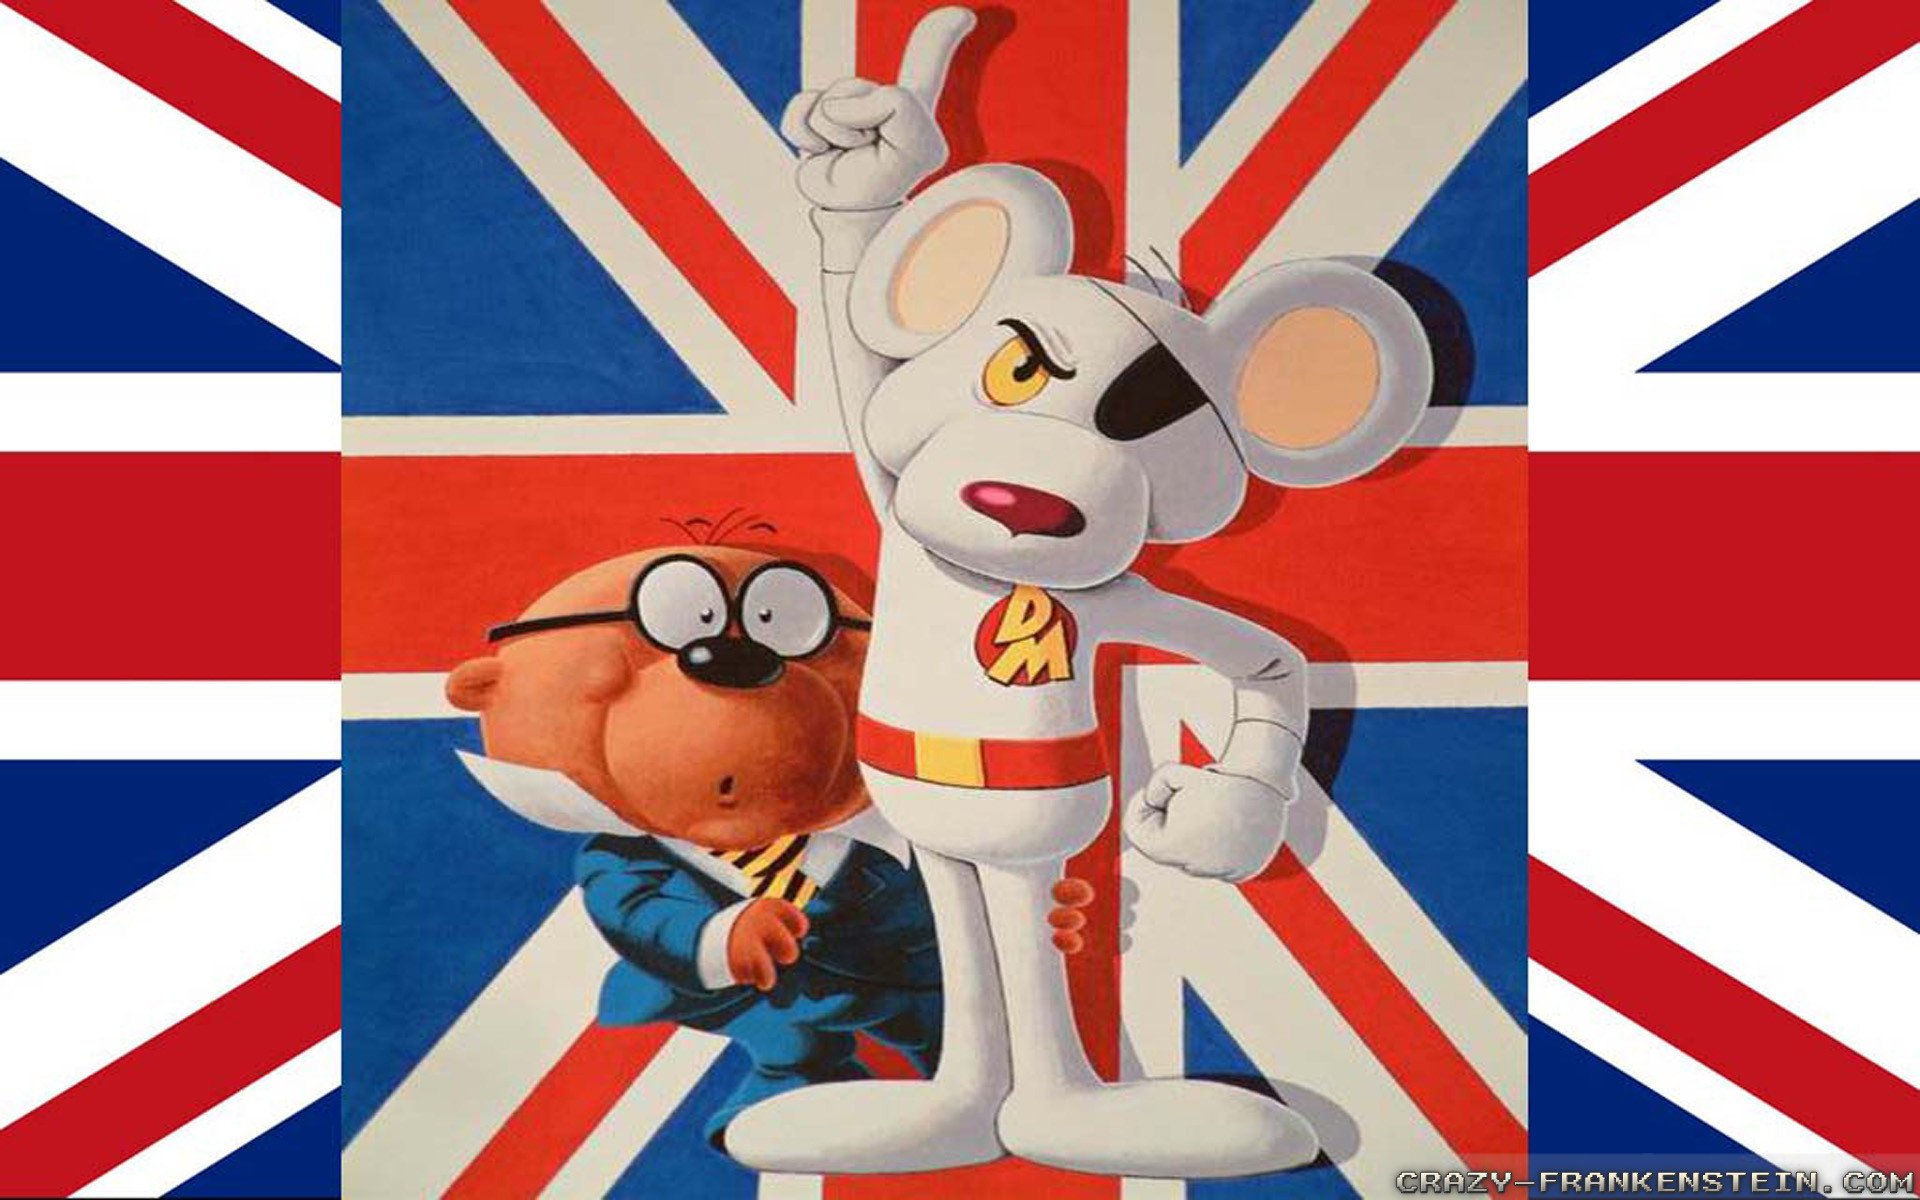 Res: 1920x1200, Wallpaper: Danger Mouse Uk Resolution: 1024x768 | 1280x1024 | 1600x1200.  Widescreen Res: 1440x900 | 1680x1050 |